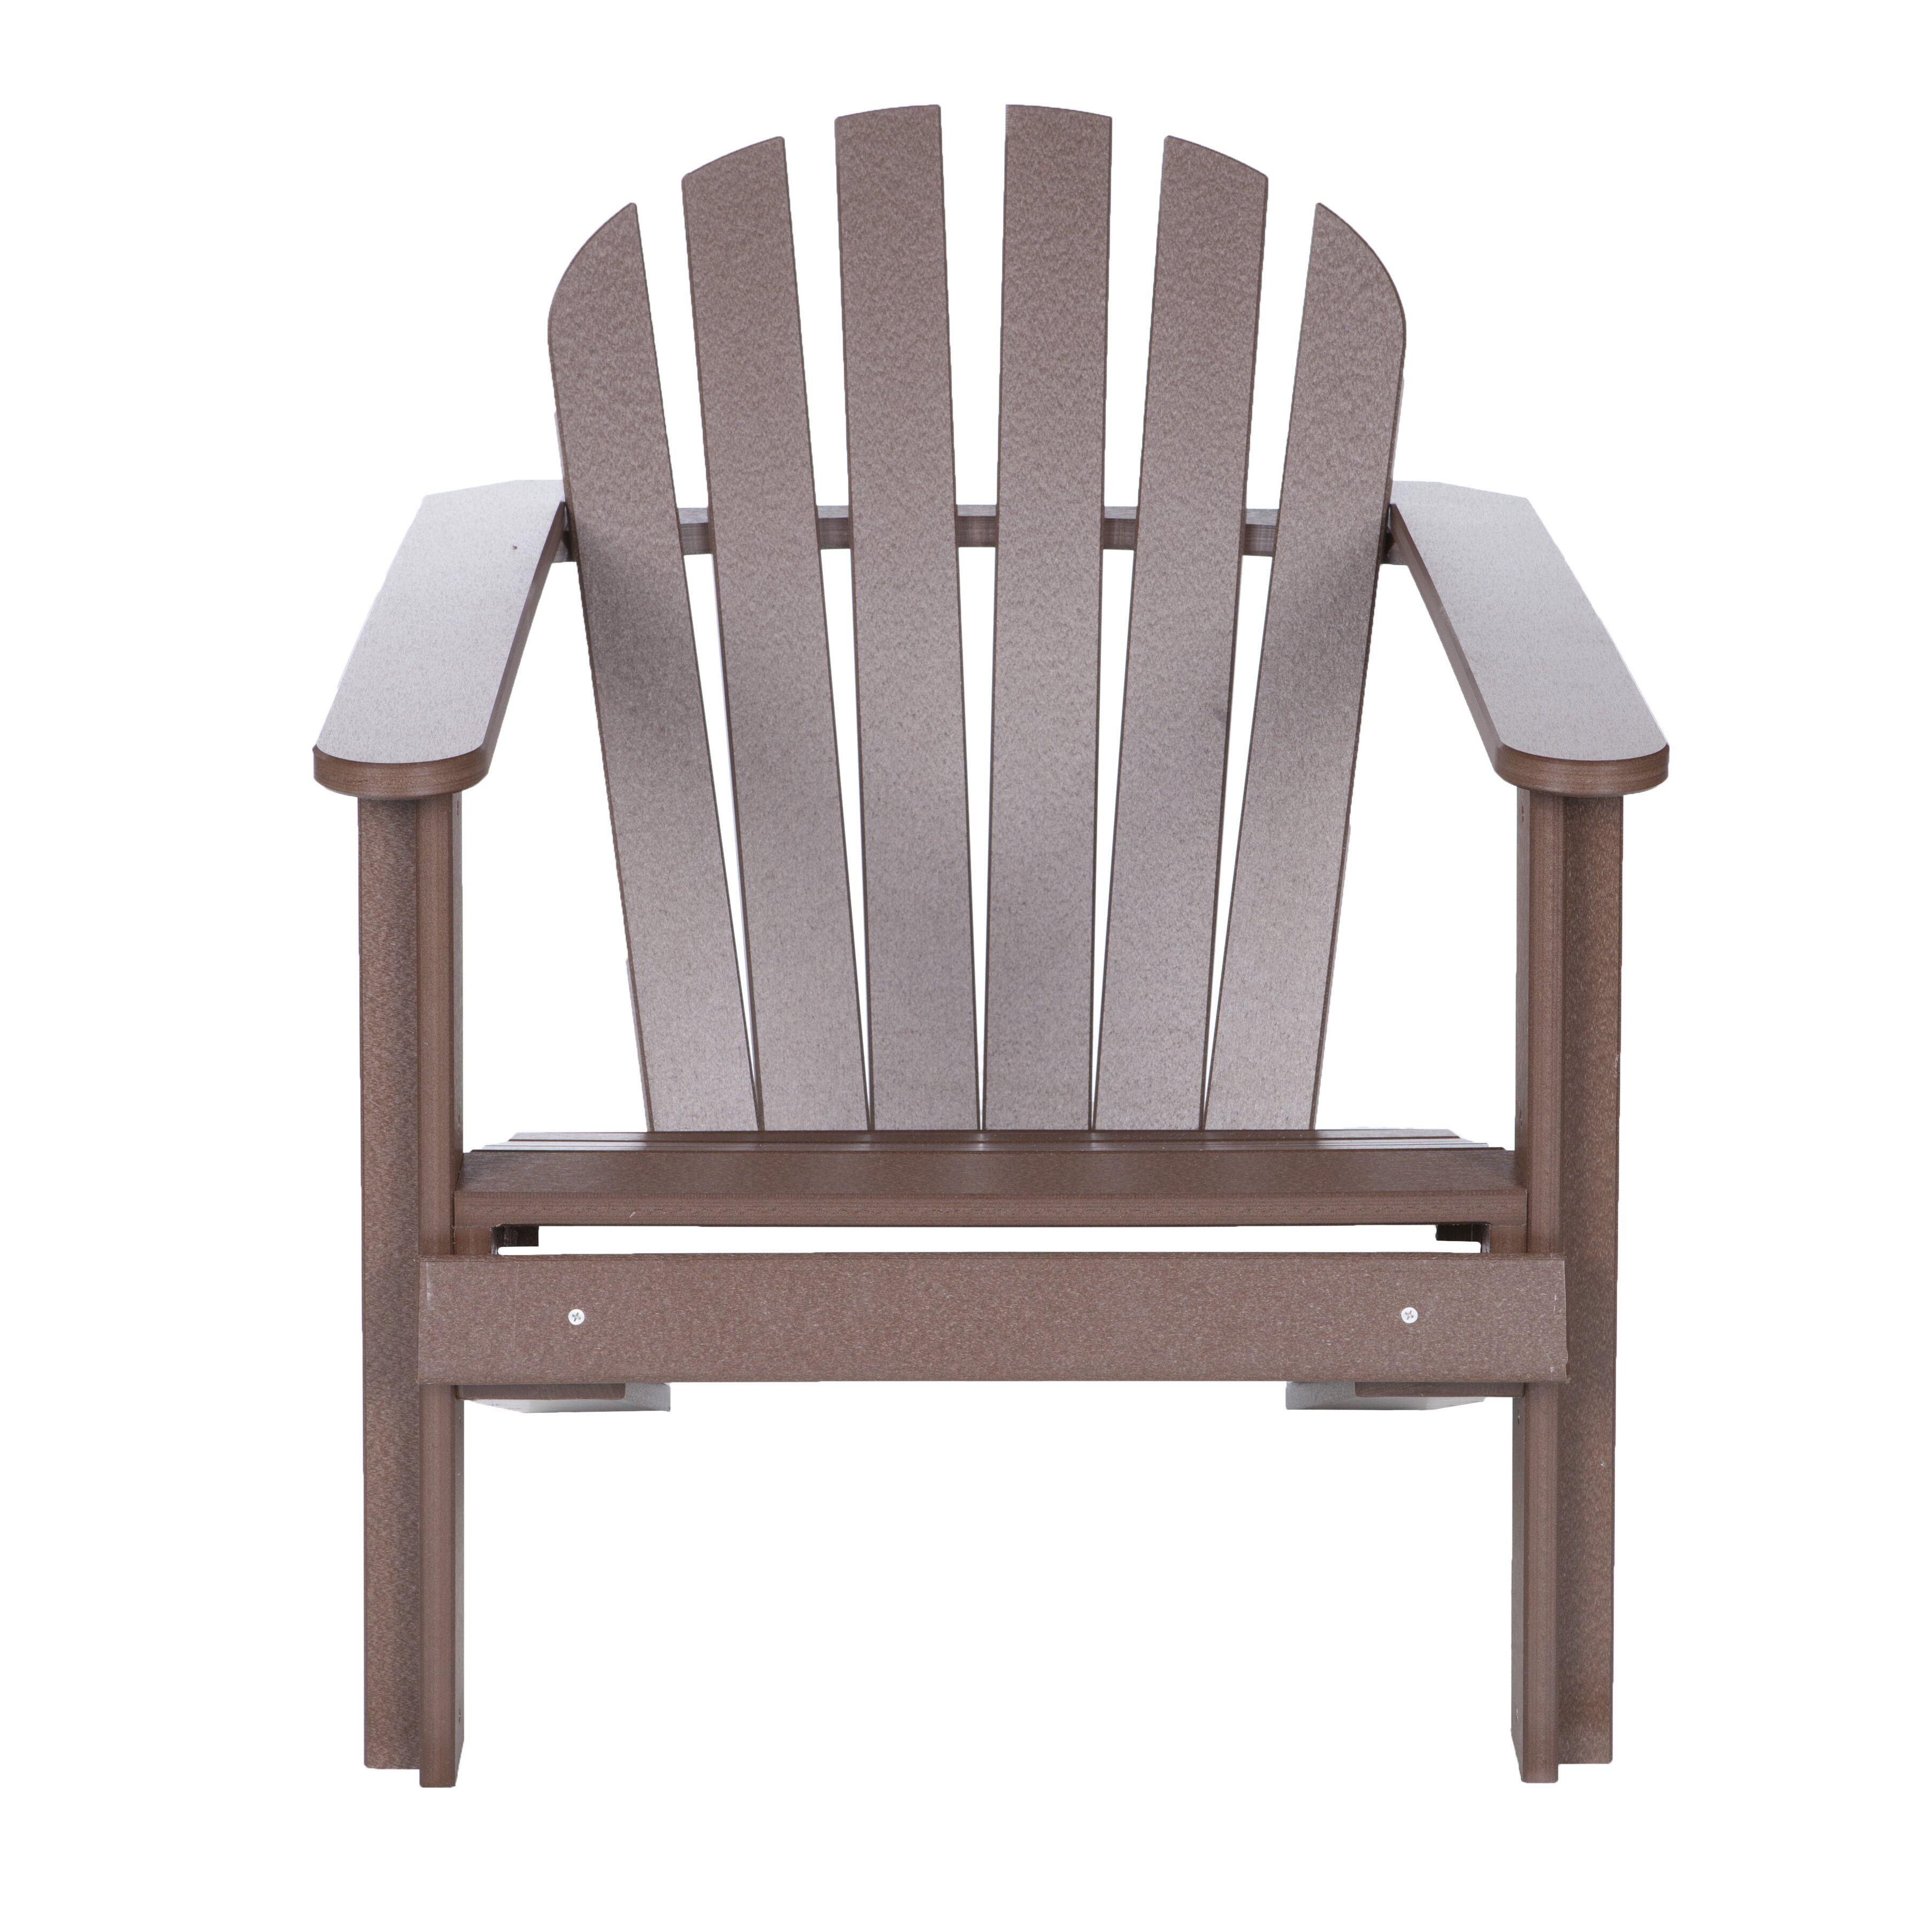 Eagle One Cozy Adirondack Chair & Reviews | Wayfair